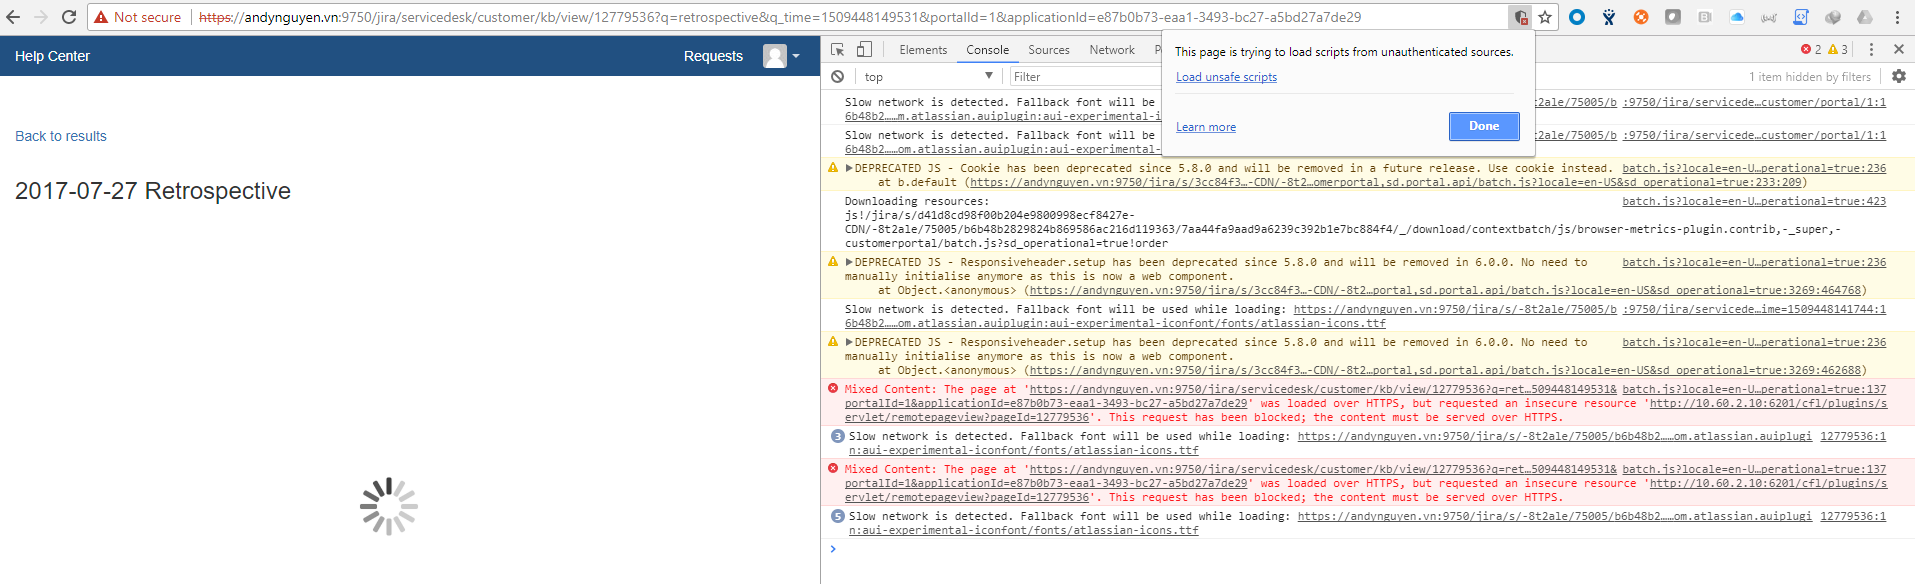 Unable to View Knowledge Base due to Browser Security for